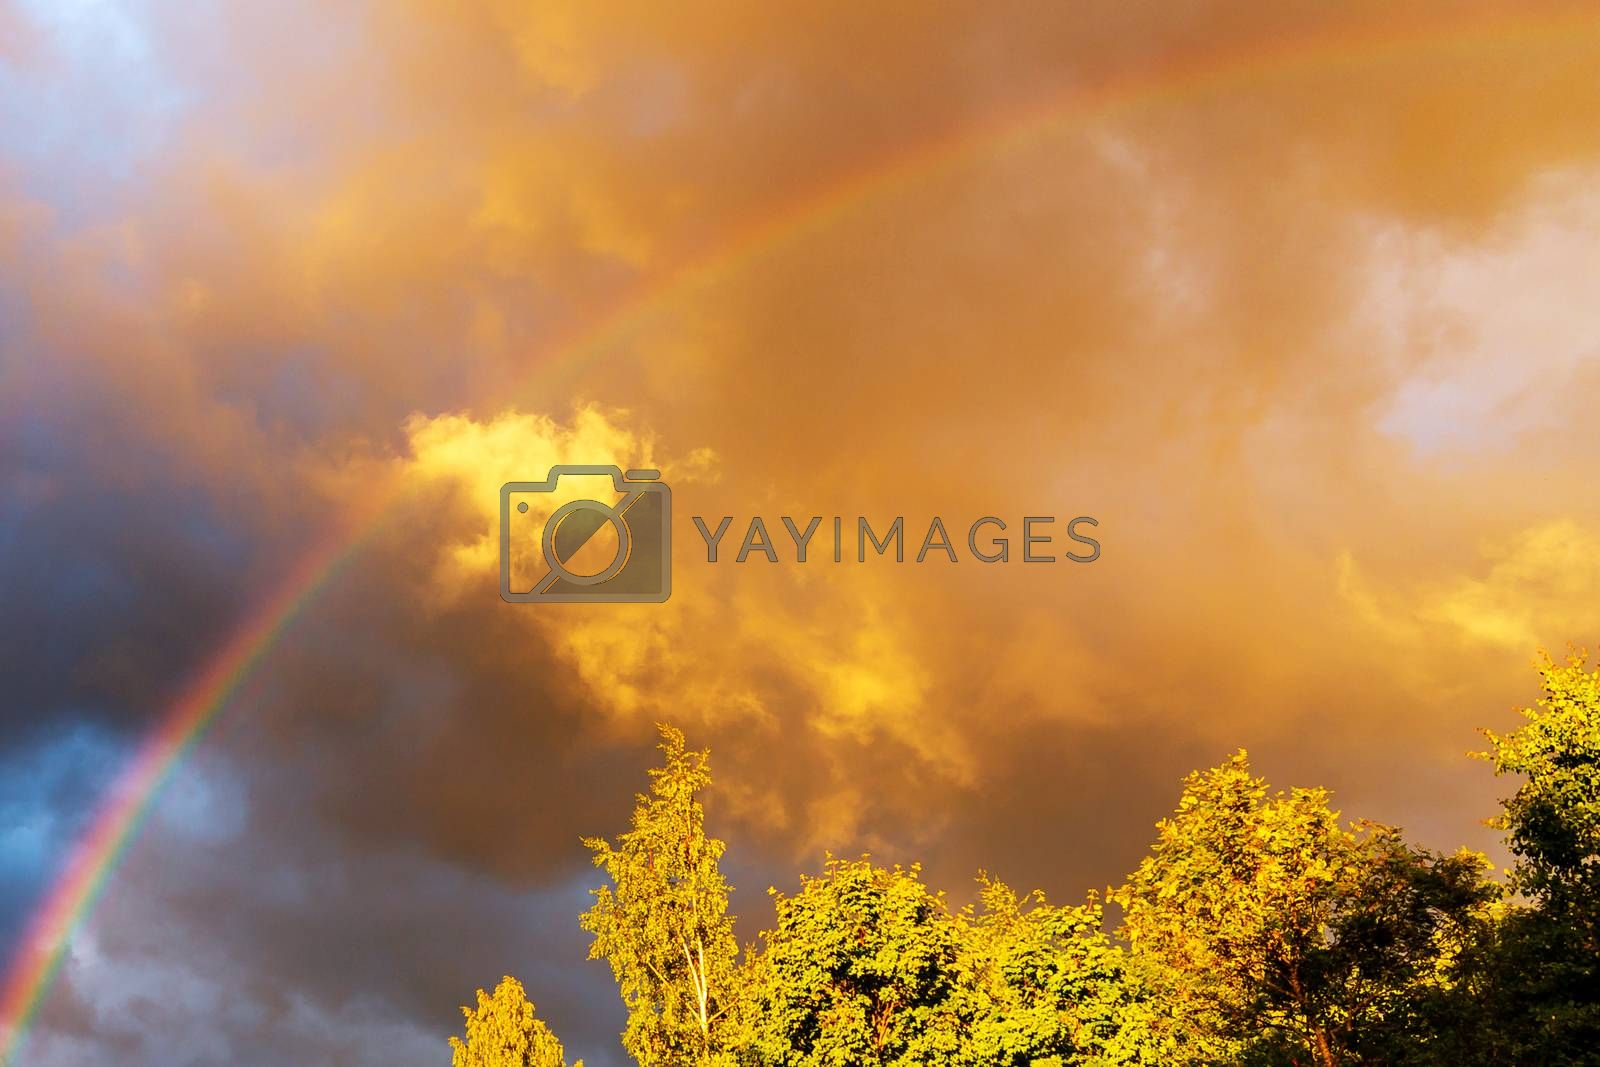 Rainbow after rain in a cloudy sky among dramatic clouds by galsand